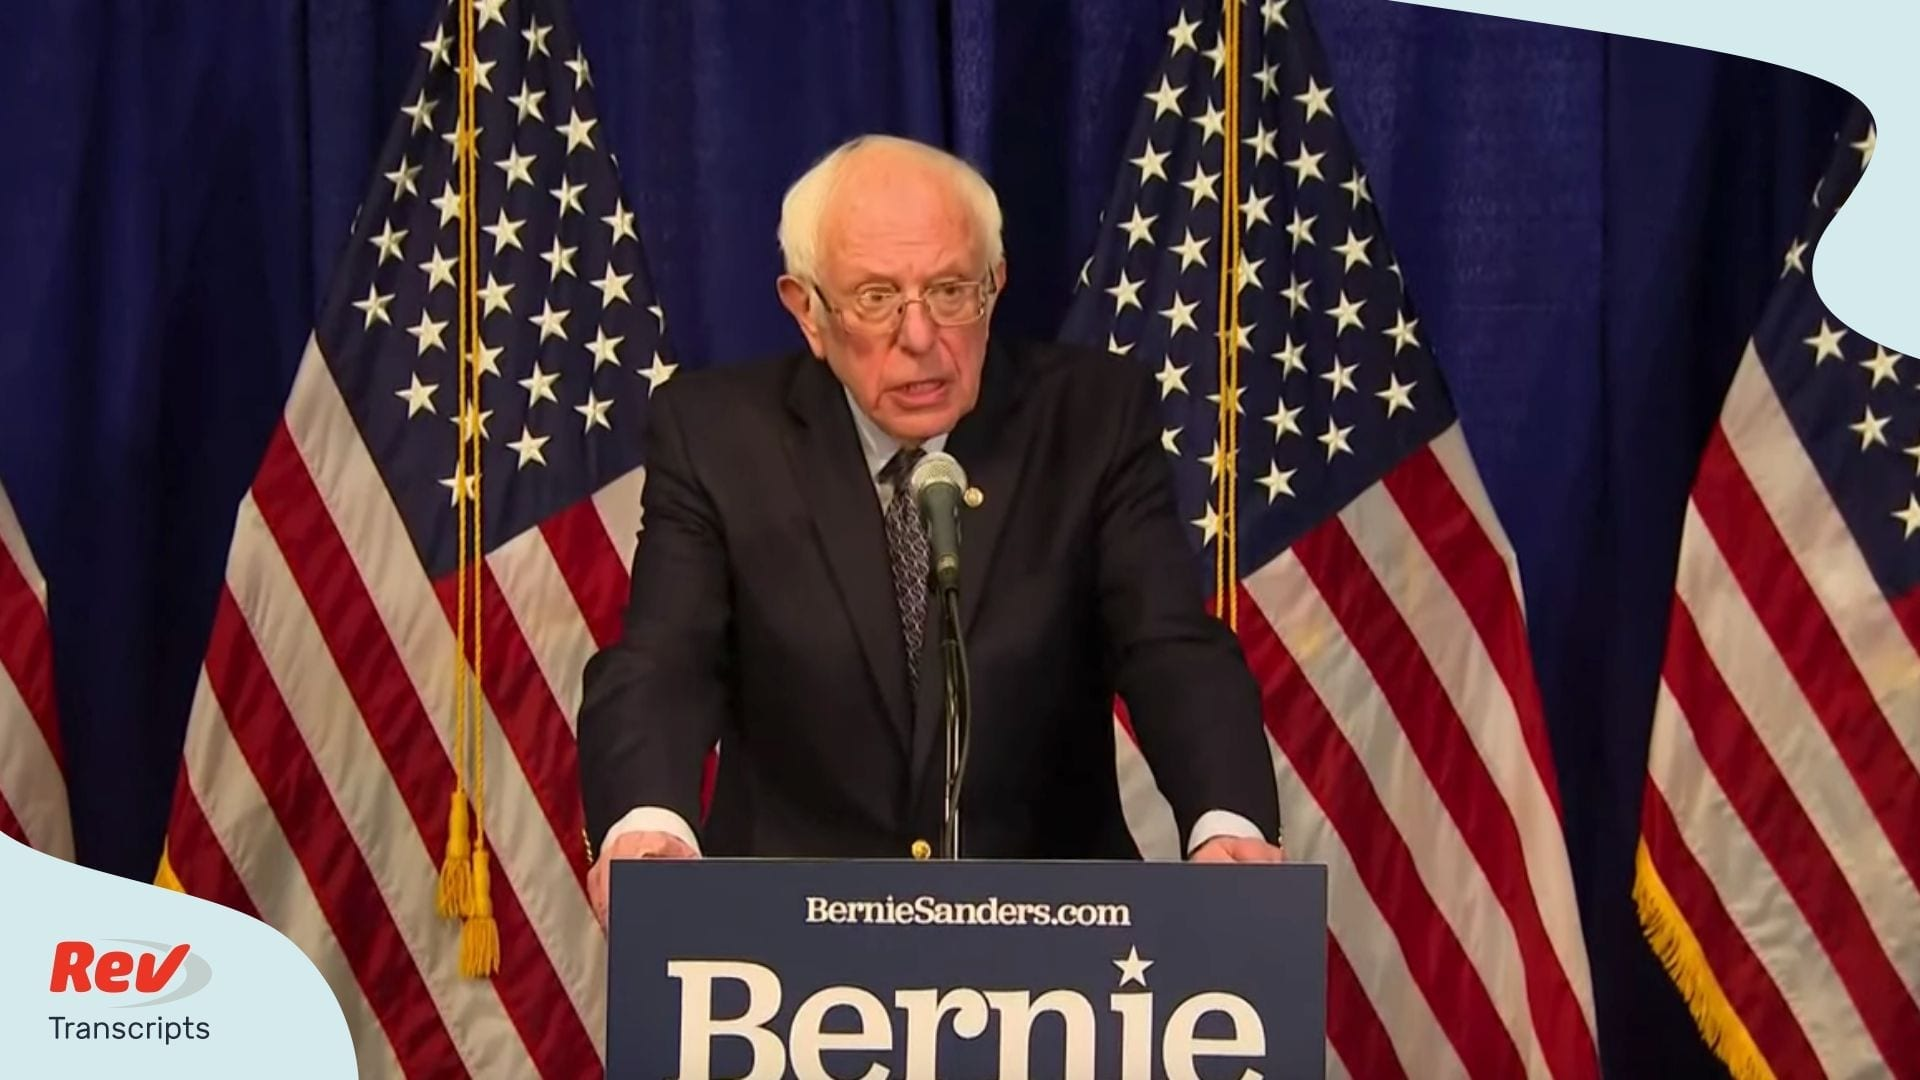 Bernie Sanders Speech Stays in Democratic Presidential Race